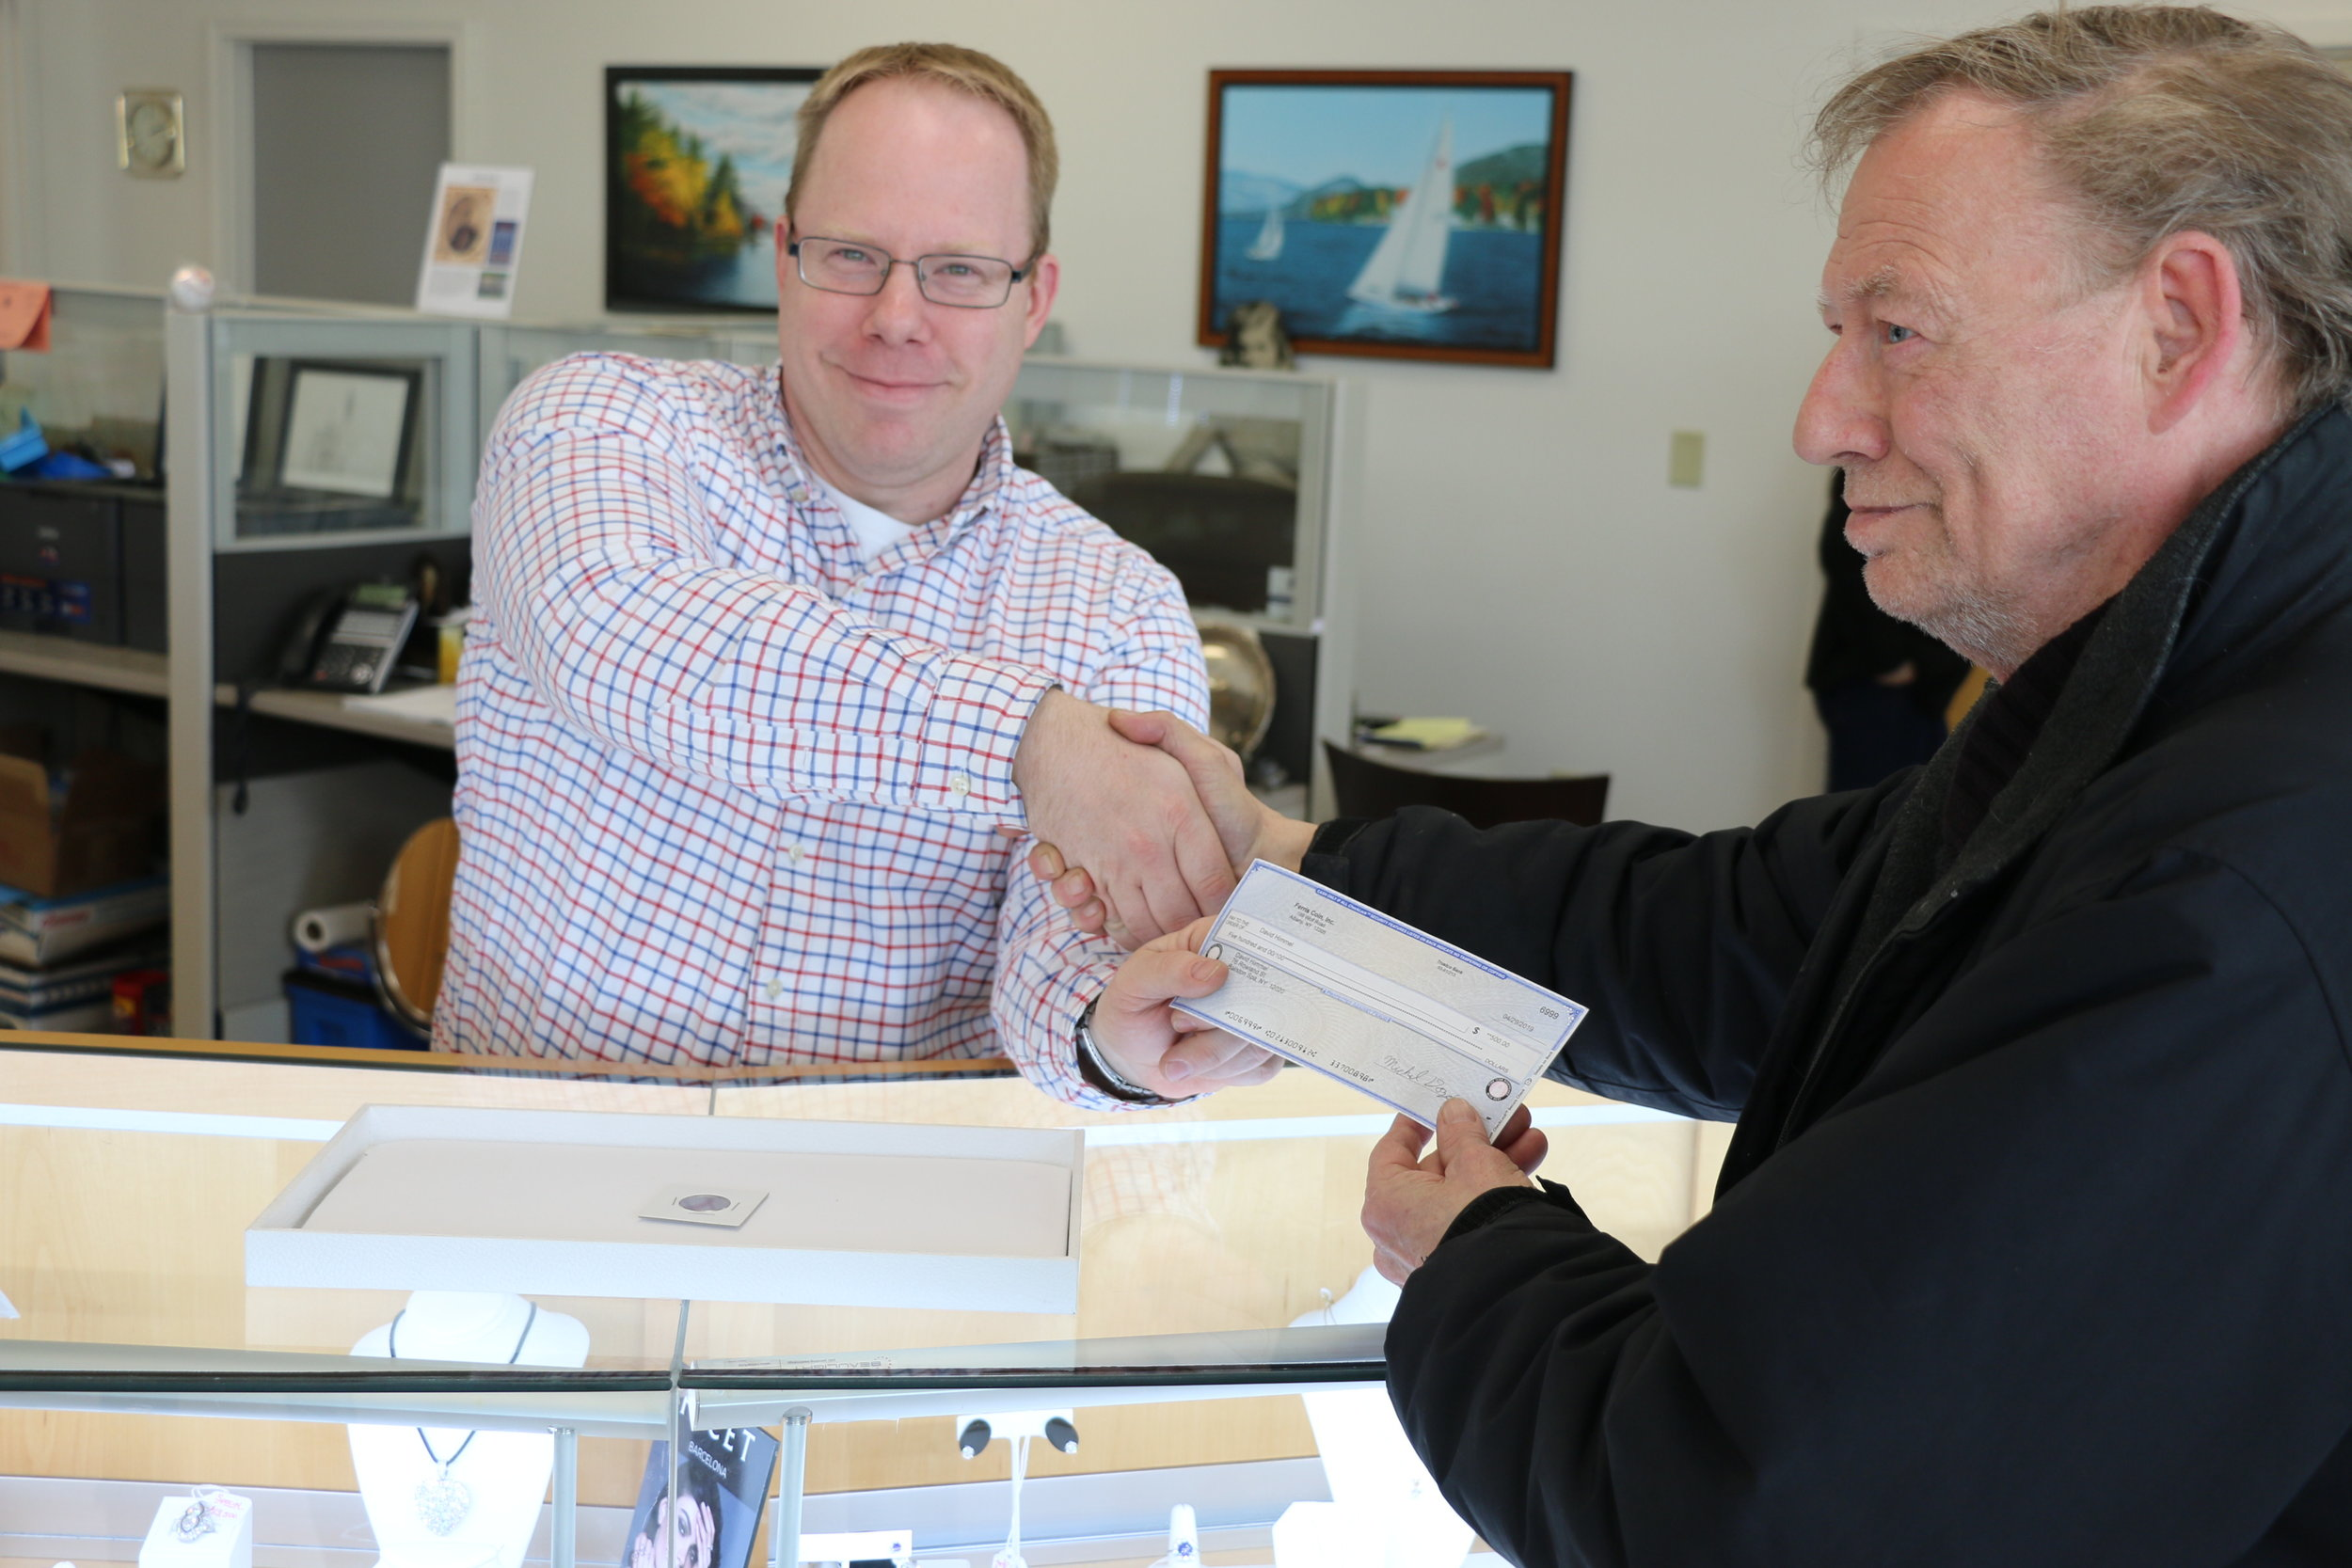 Ferris Coin & Jewlery Co. Managing Partner Mike Dozois hands David Himmel of Ballston Spa, N.Y. a check for $500 in exchange for his 2019-W Quarter.